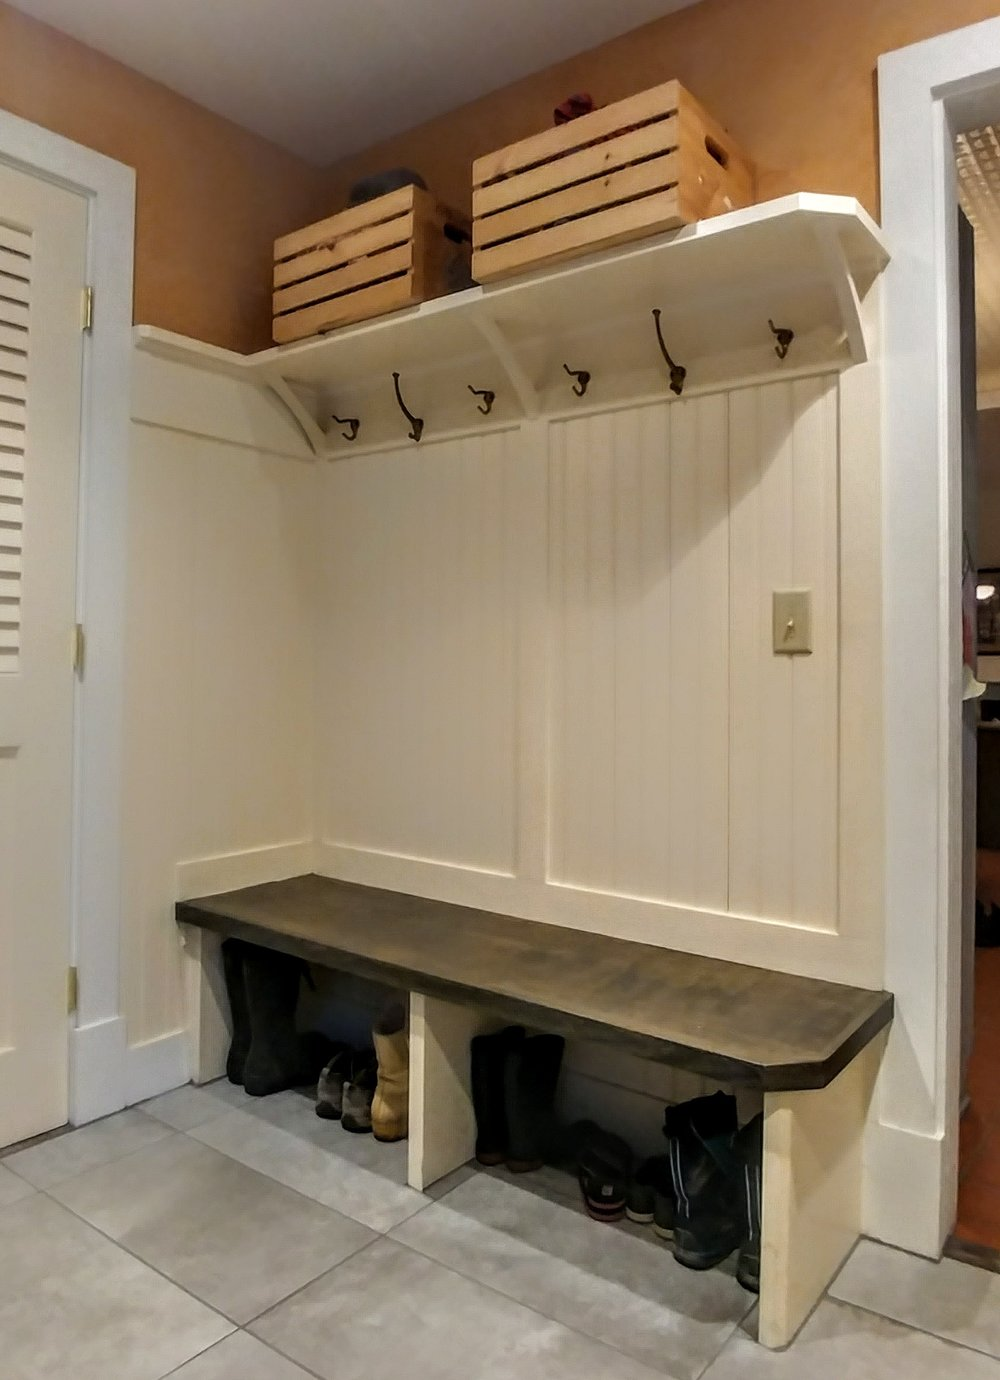 New Mudroom, old house